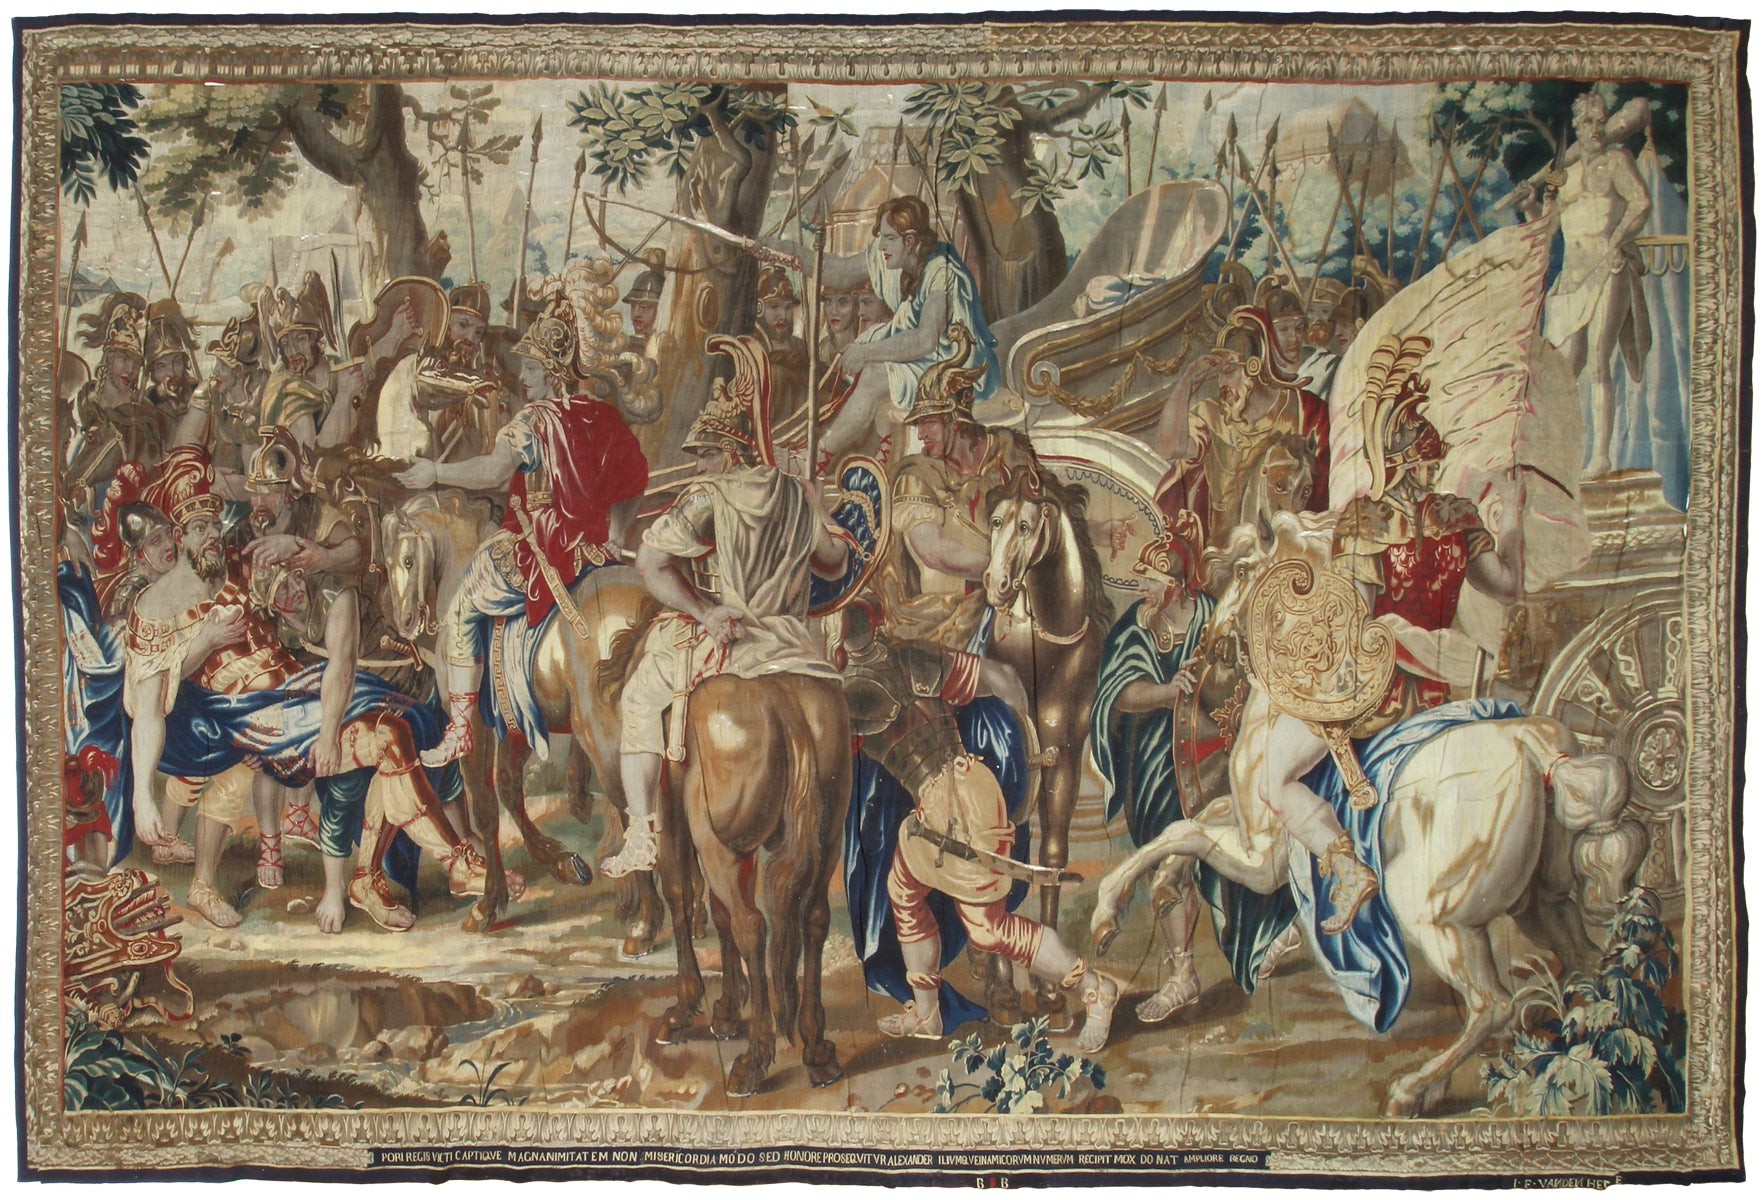 Rare Late 17th Century Brussels Historical Tapestry: Alexander and Porus-Turco Persian Rug Company Inc.